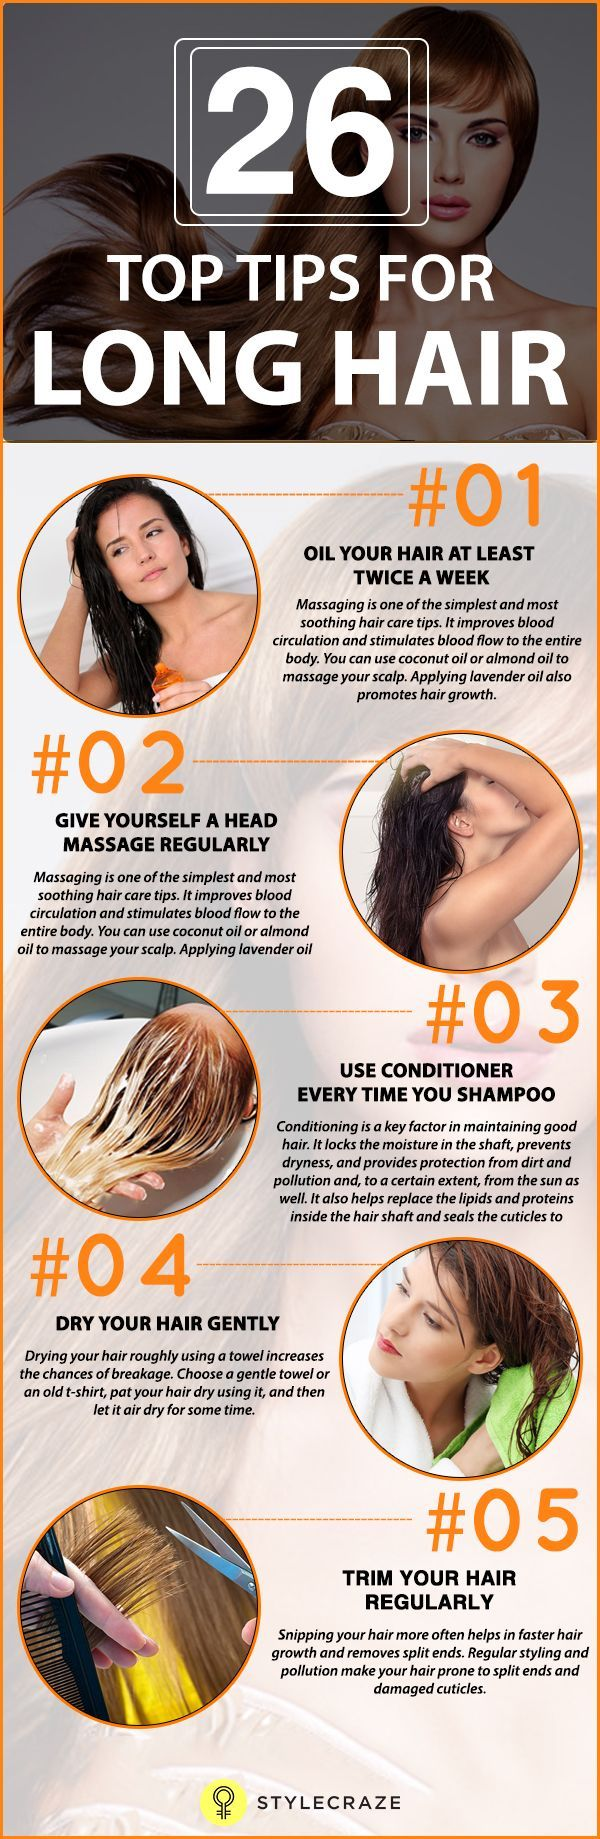 Long, gorgeous,& healthy tresses are every girl's dream, but most of us end up hating our dull and lifeless hair. Here are home remedies for long hair, simple yet effective